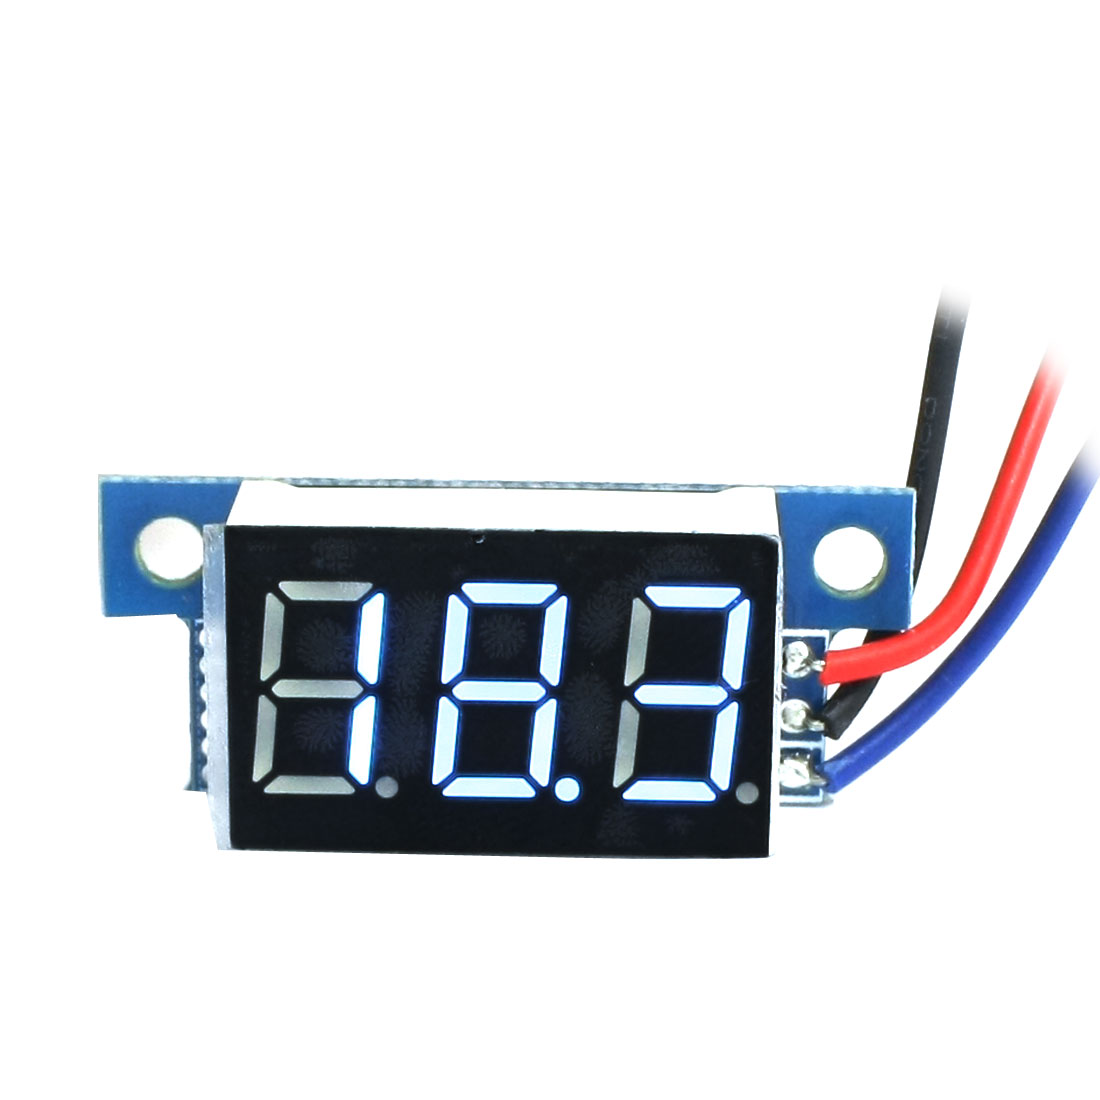 Digital DC 0-100V LCD Display Blue Digit Voltage Tester Gauge Panel Voltmeter